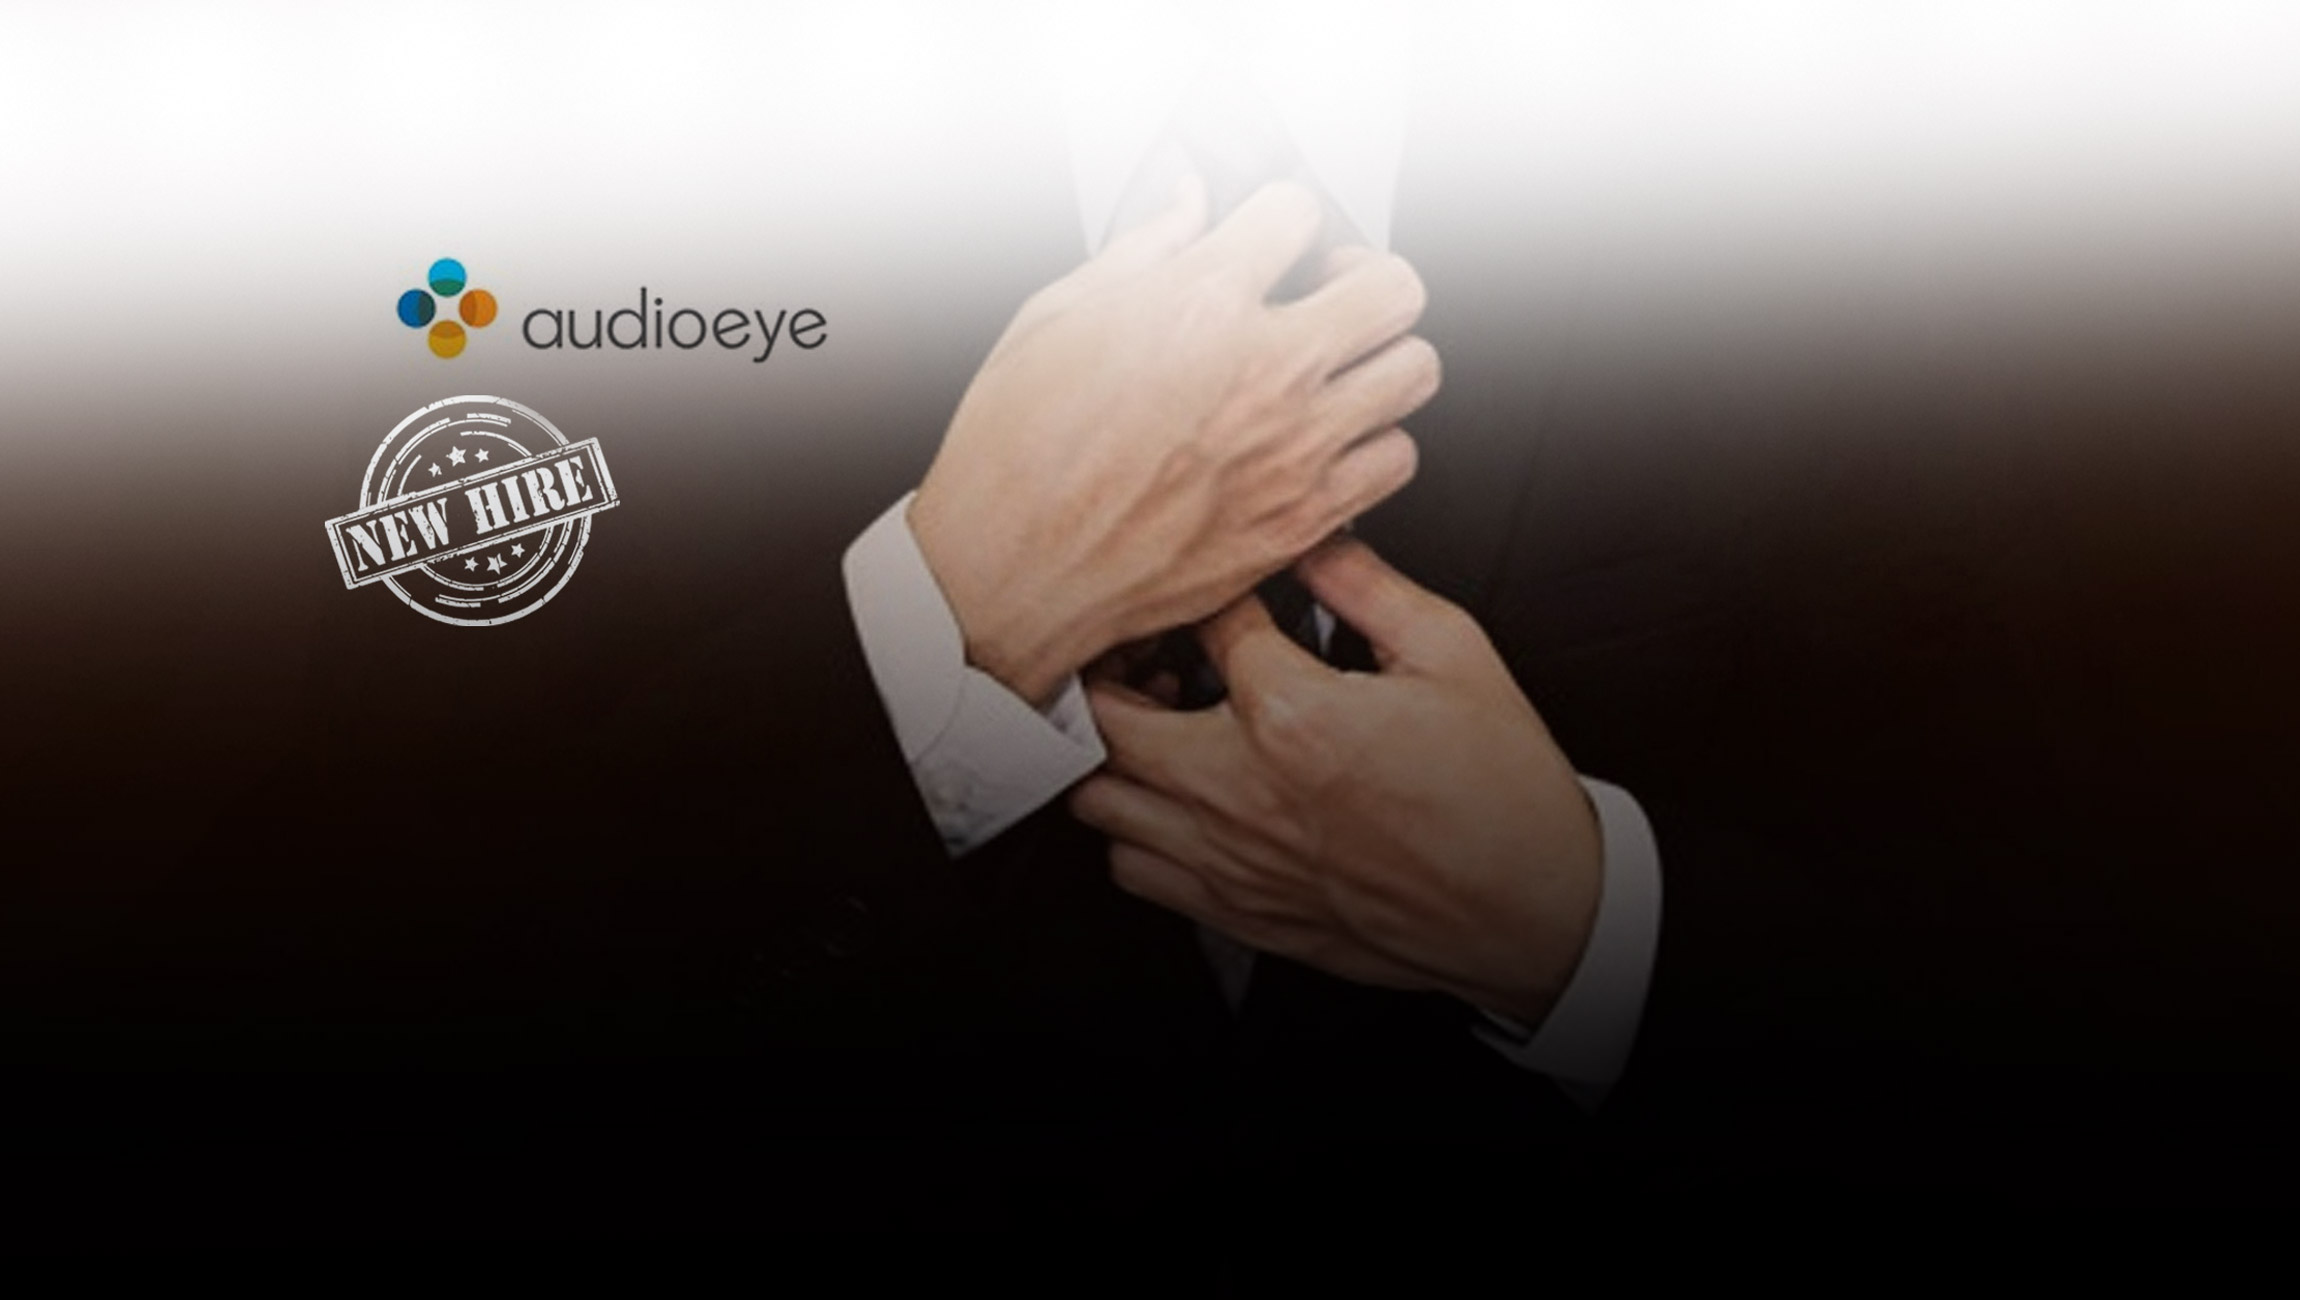 Russell Griffin Joins AudioEye as Chief Revenue Officer